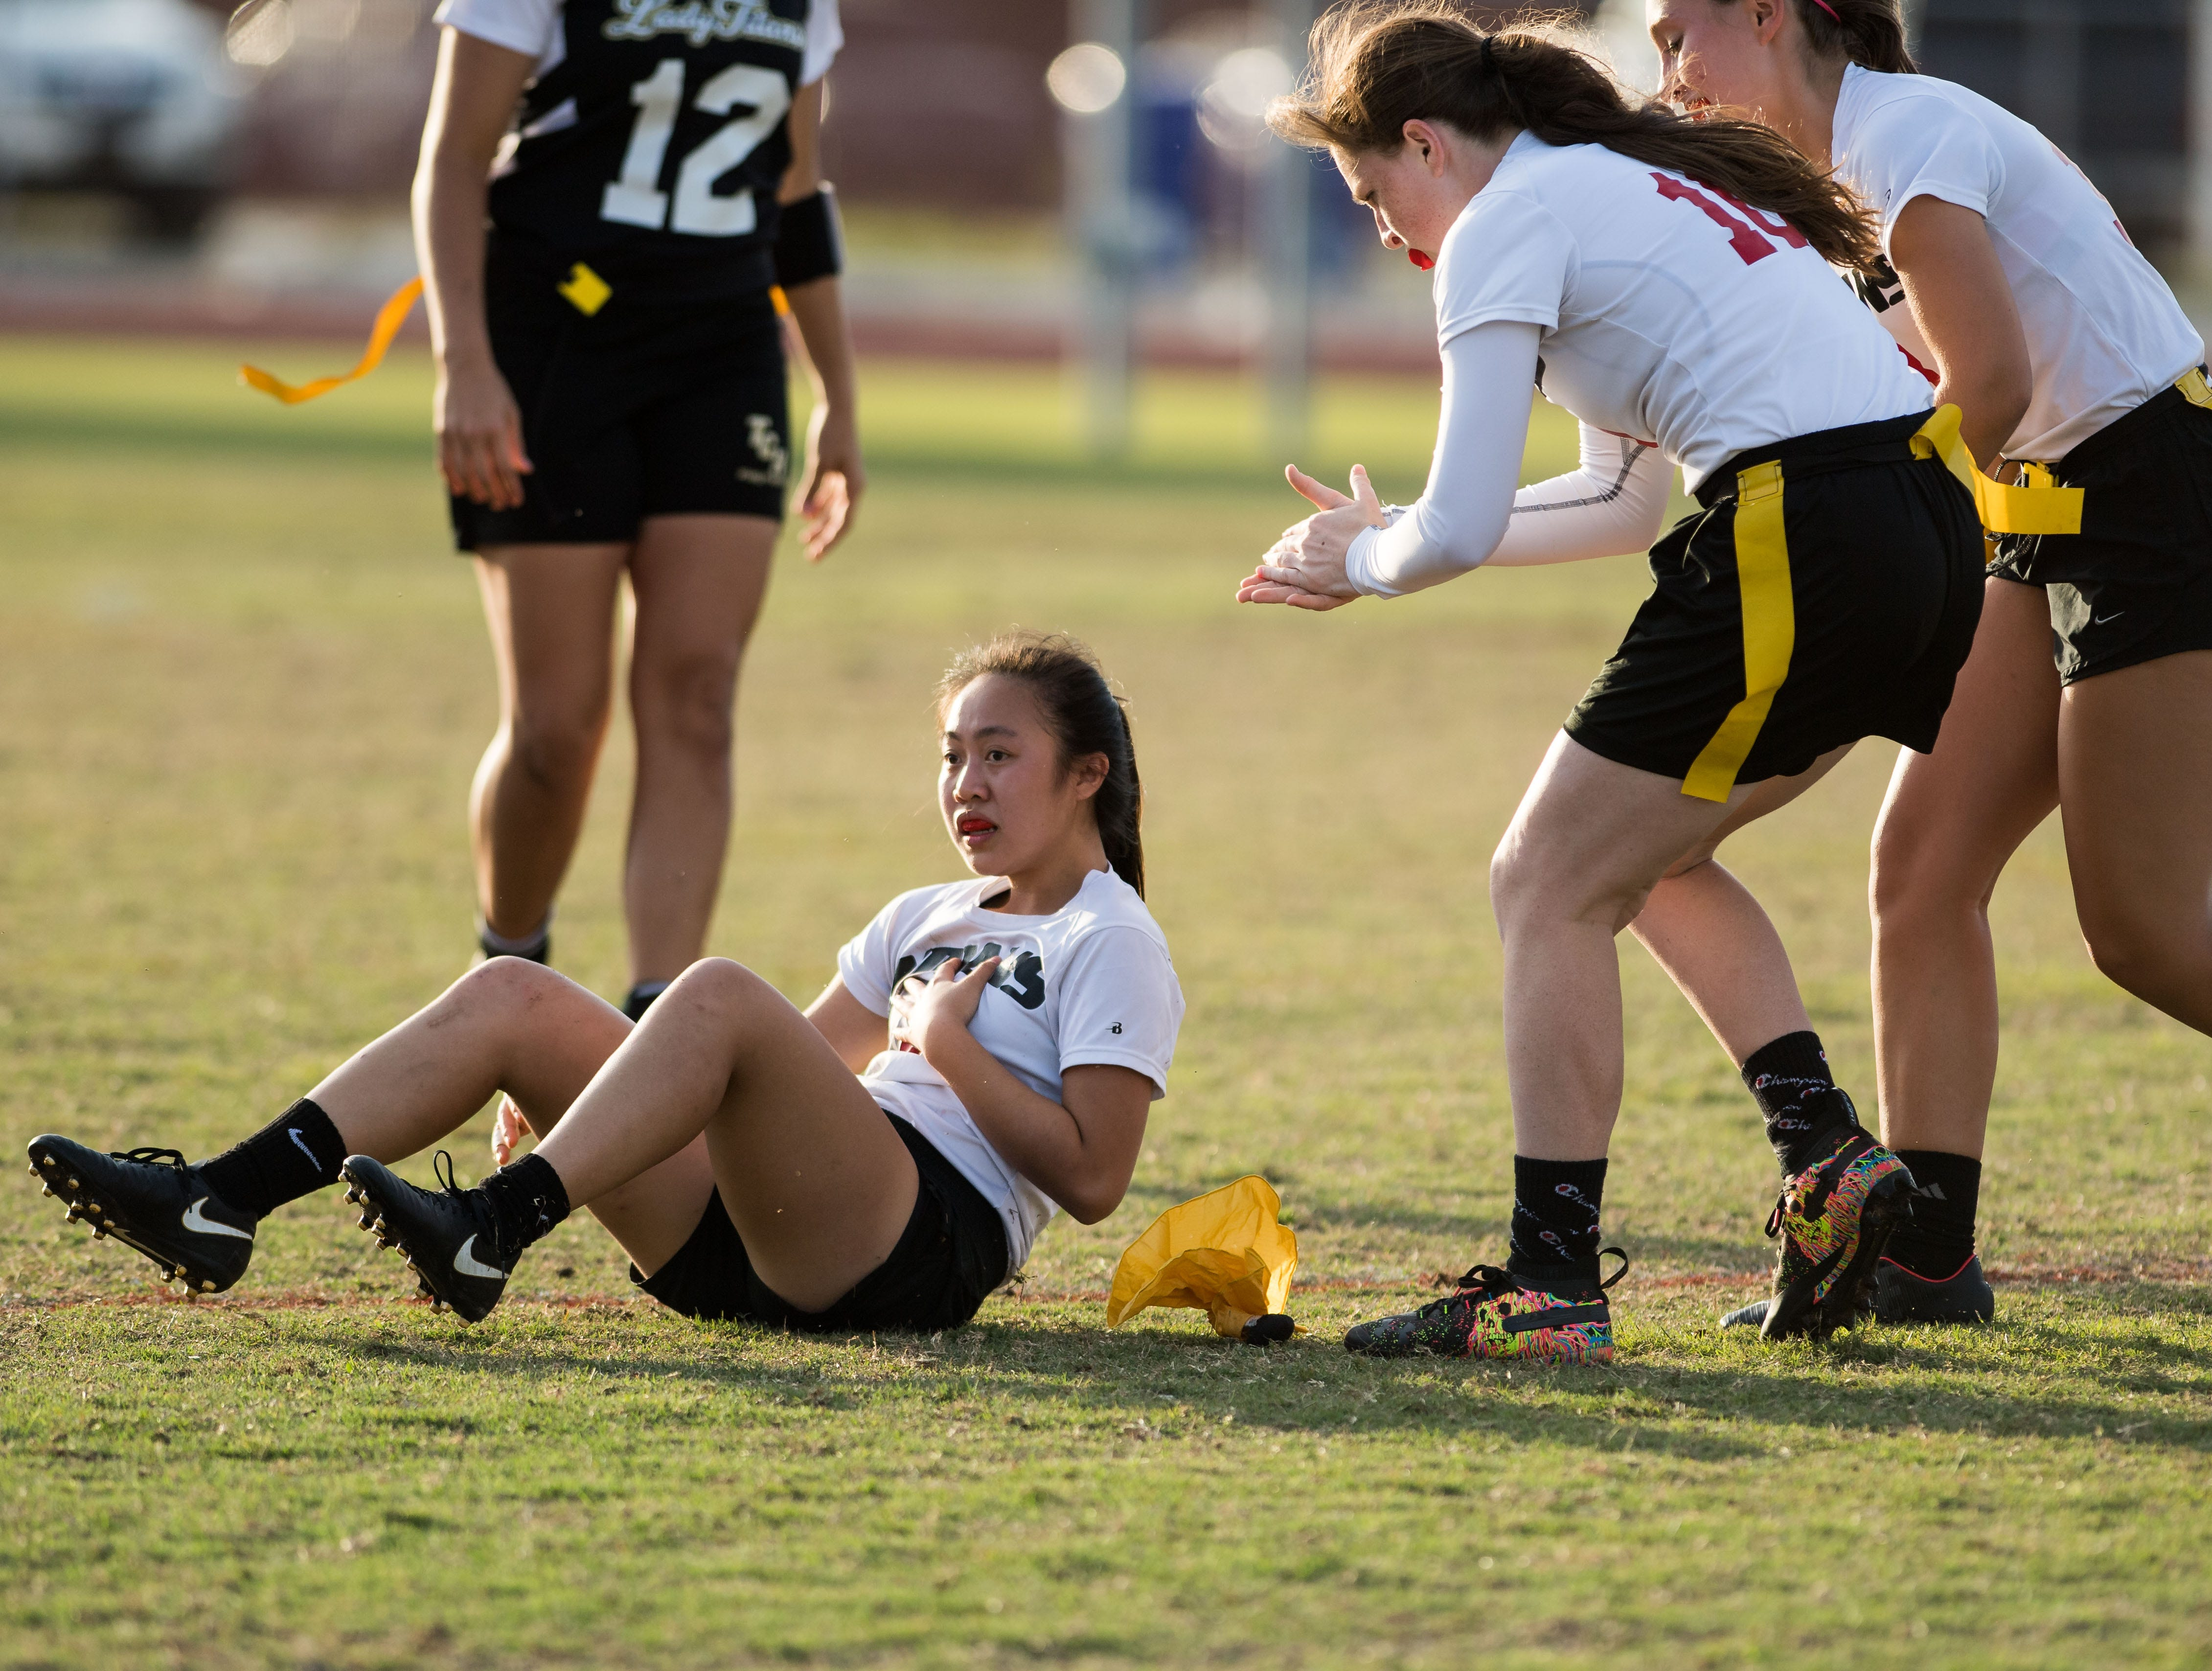 Vero Beach's Jenny Quach recovers after being knocked to the ground after a big reception against Treasure Coast in the fourth quarter at the high school flag football game Wednesday, March 13, 2019, at Vero Beach High School.